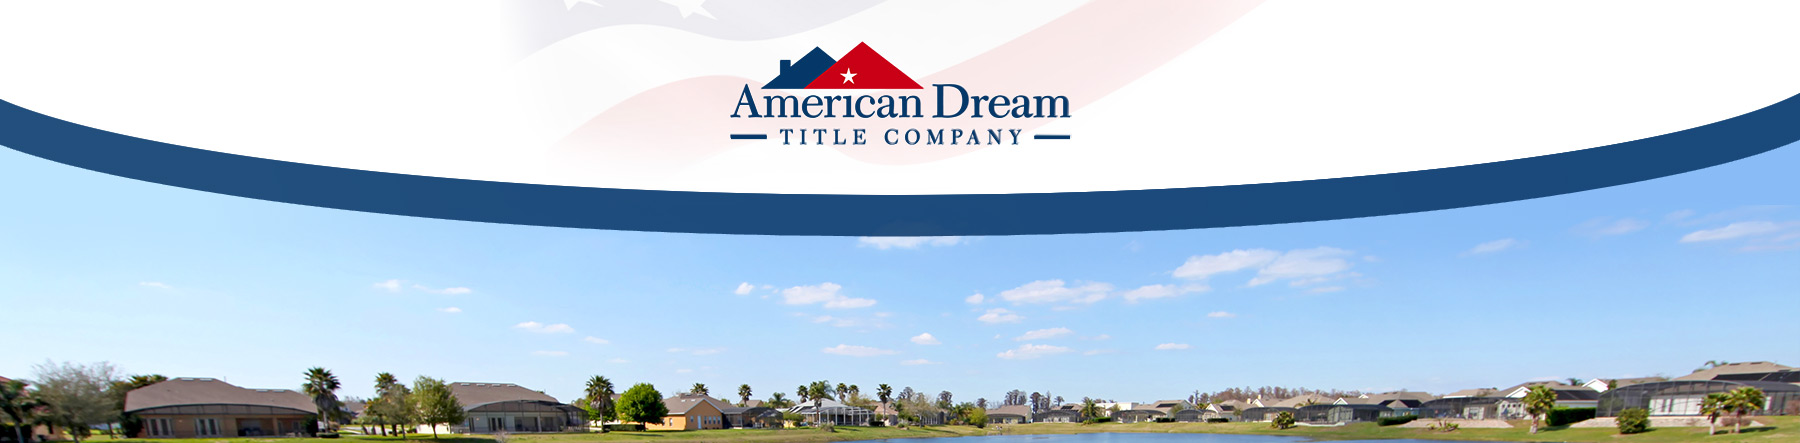 Delivering the Best Florida Title Company Experience | American Dream Title Company